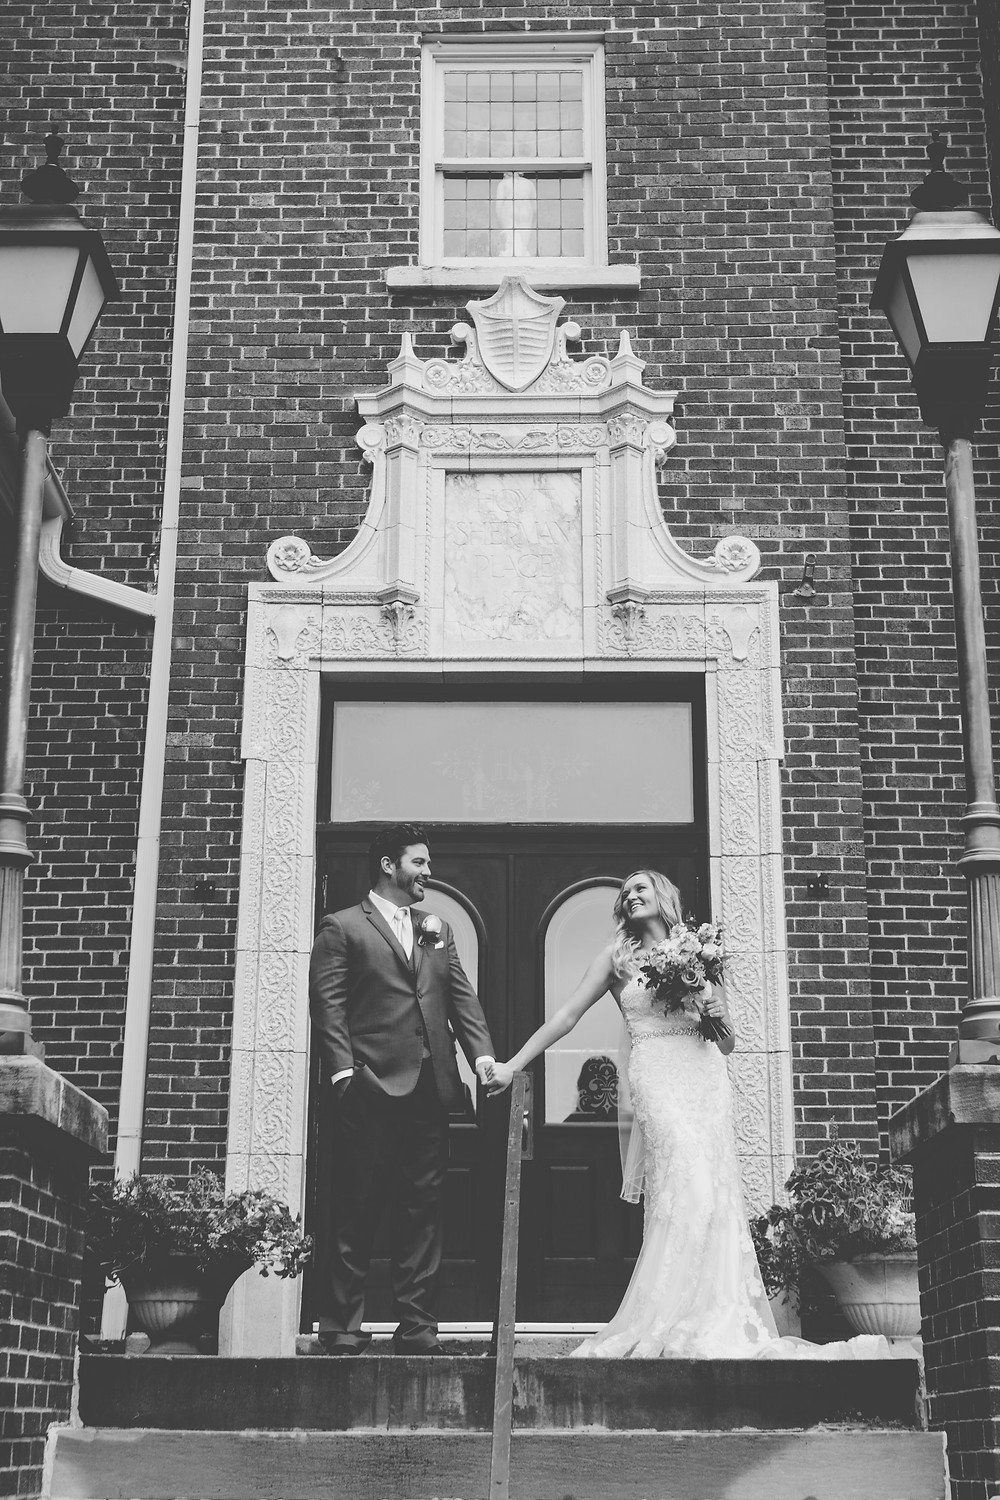 Bride and Groom hold hands in Downtwon Des Moines in front of a brick wall.